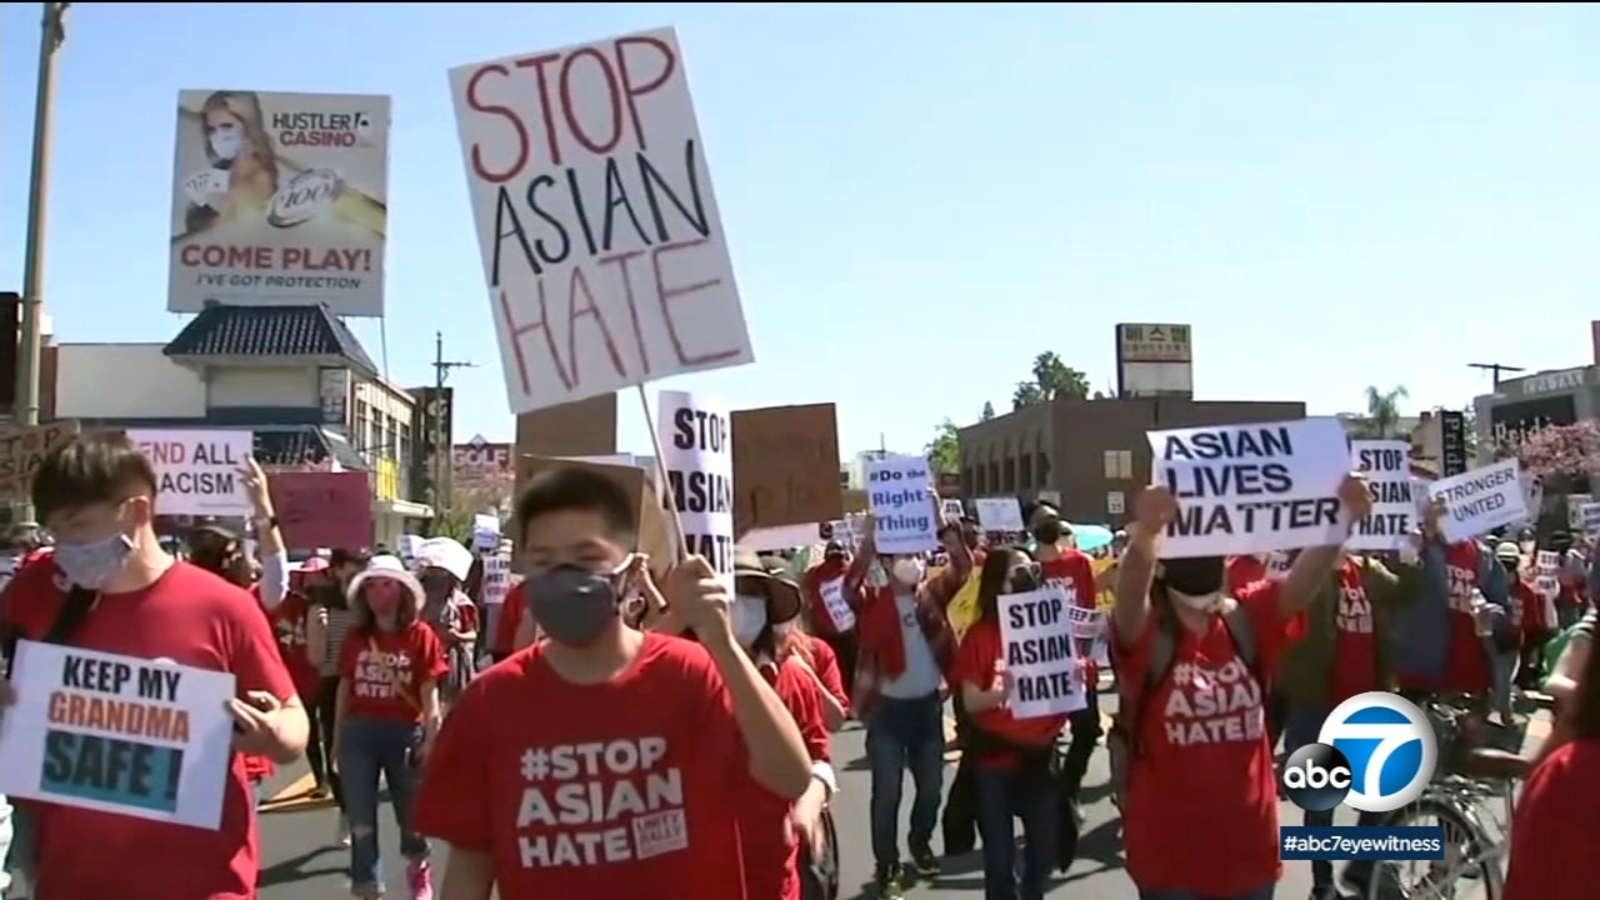 abc7.com: 'Stop Asian Hate' rallies held across SoCal and nationwide; demonstrators decry rise in violence